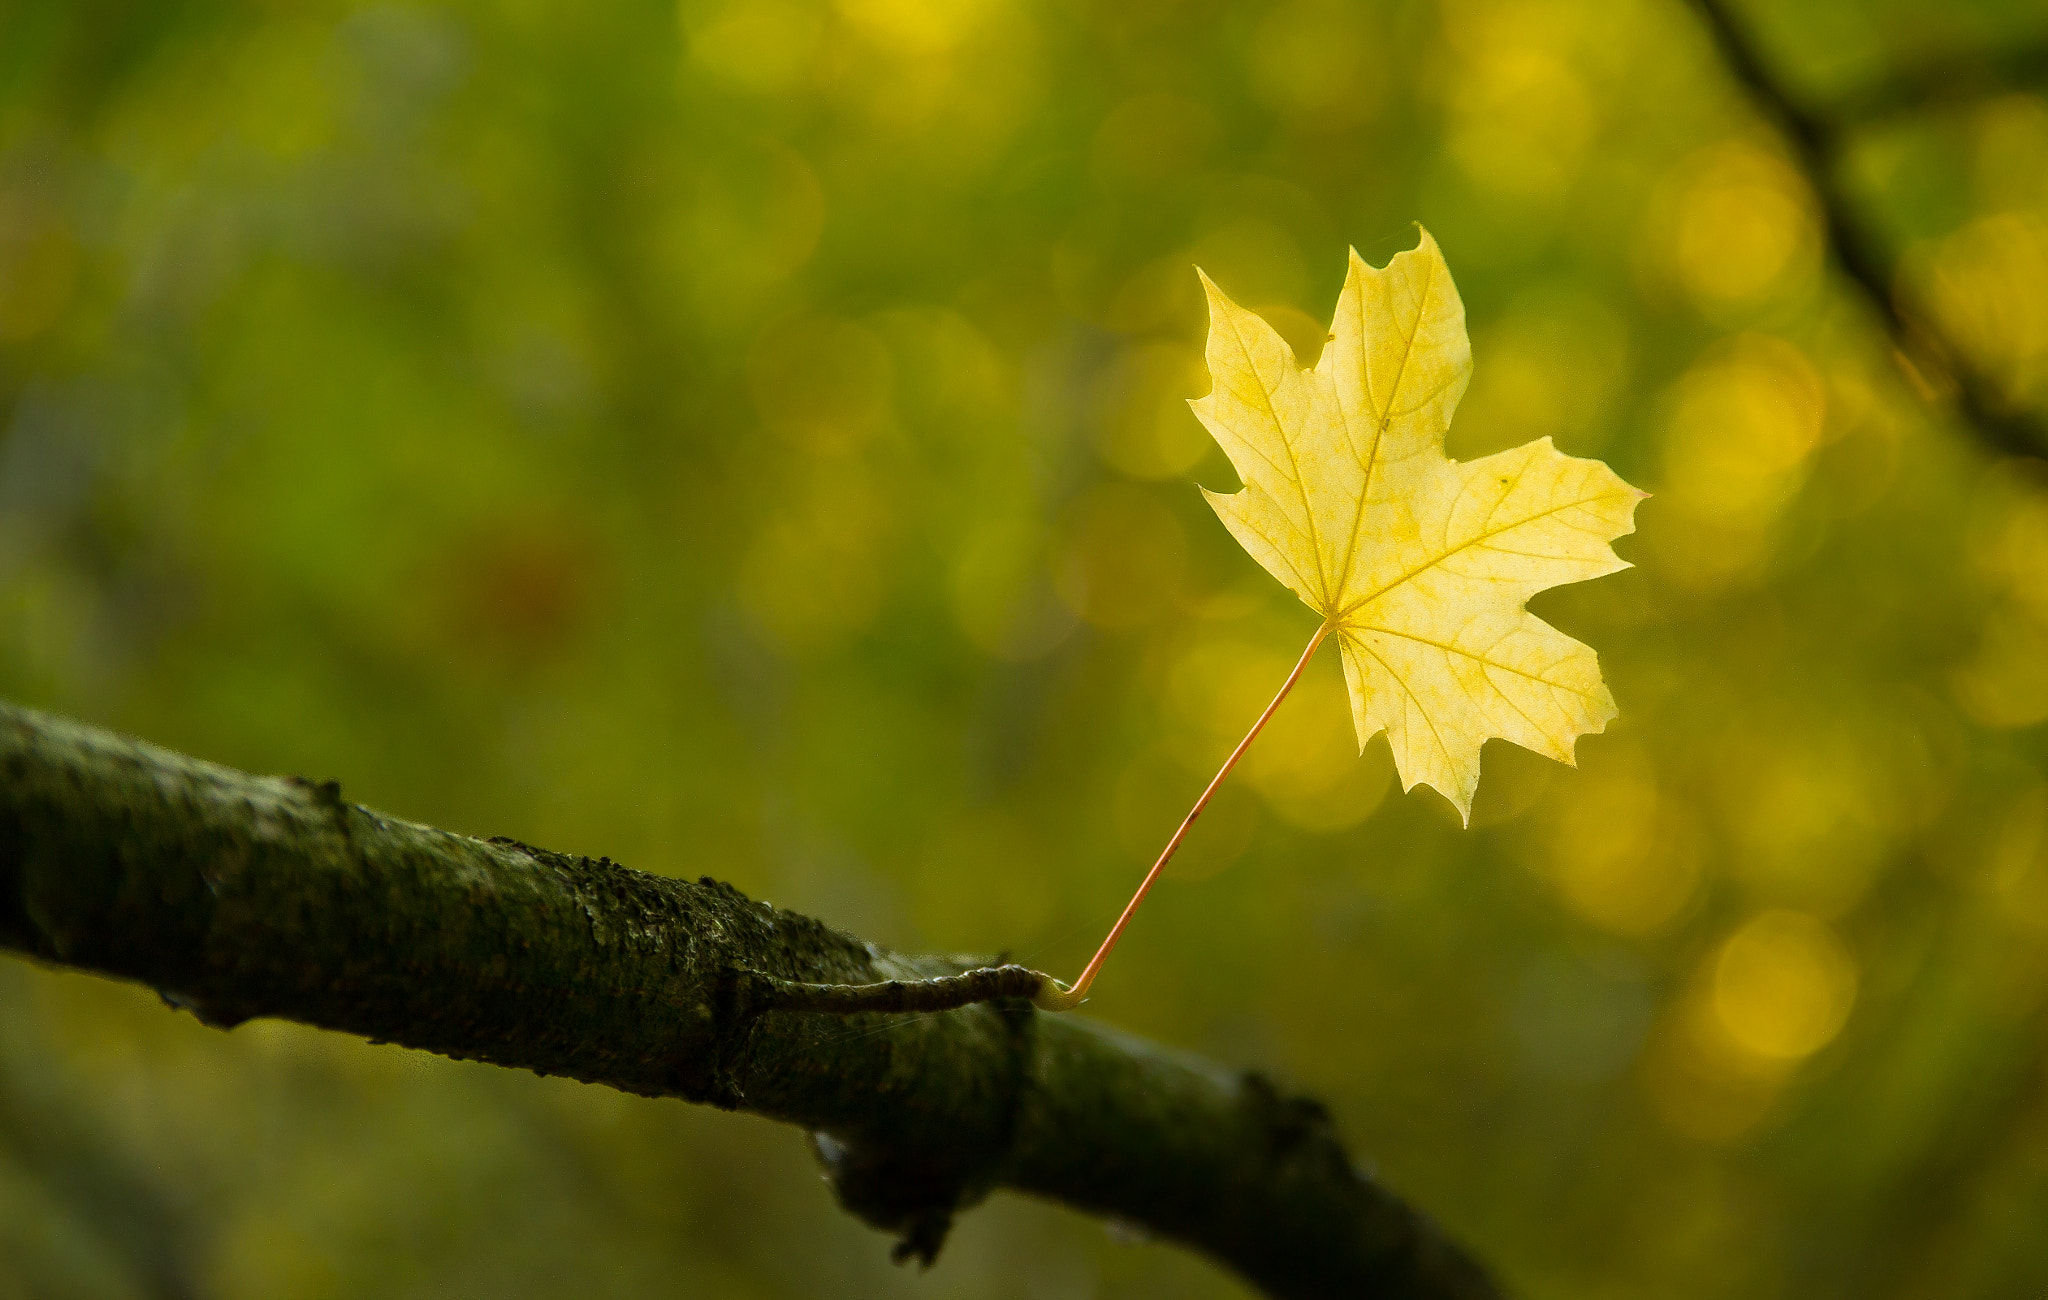 Photograph Time for some autumn colours! by Lasse Hjort on 500px